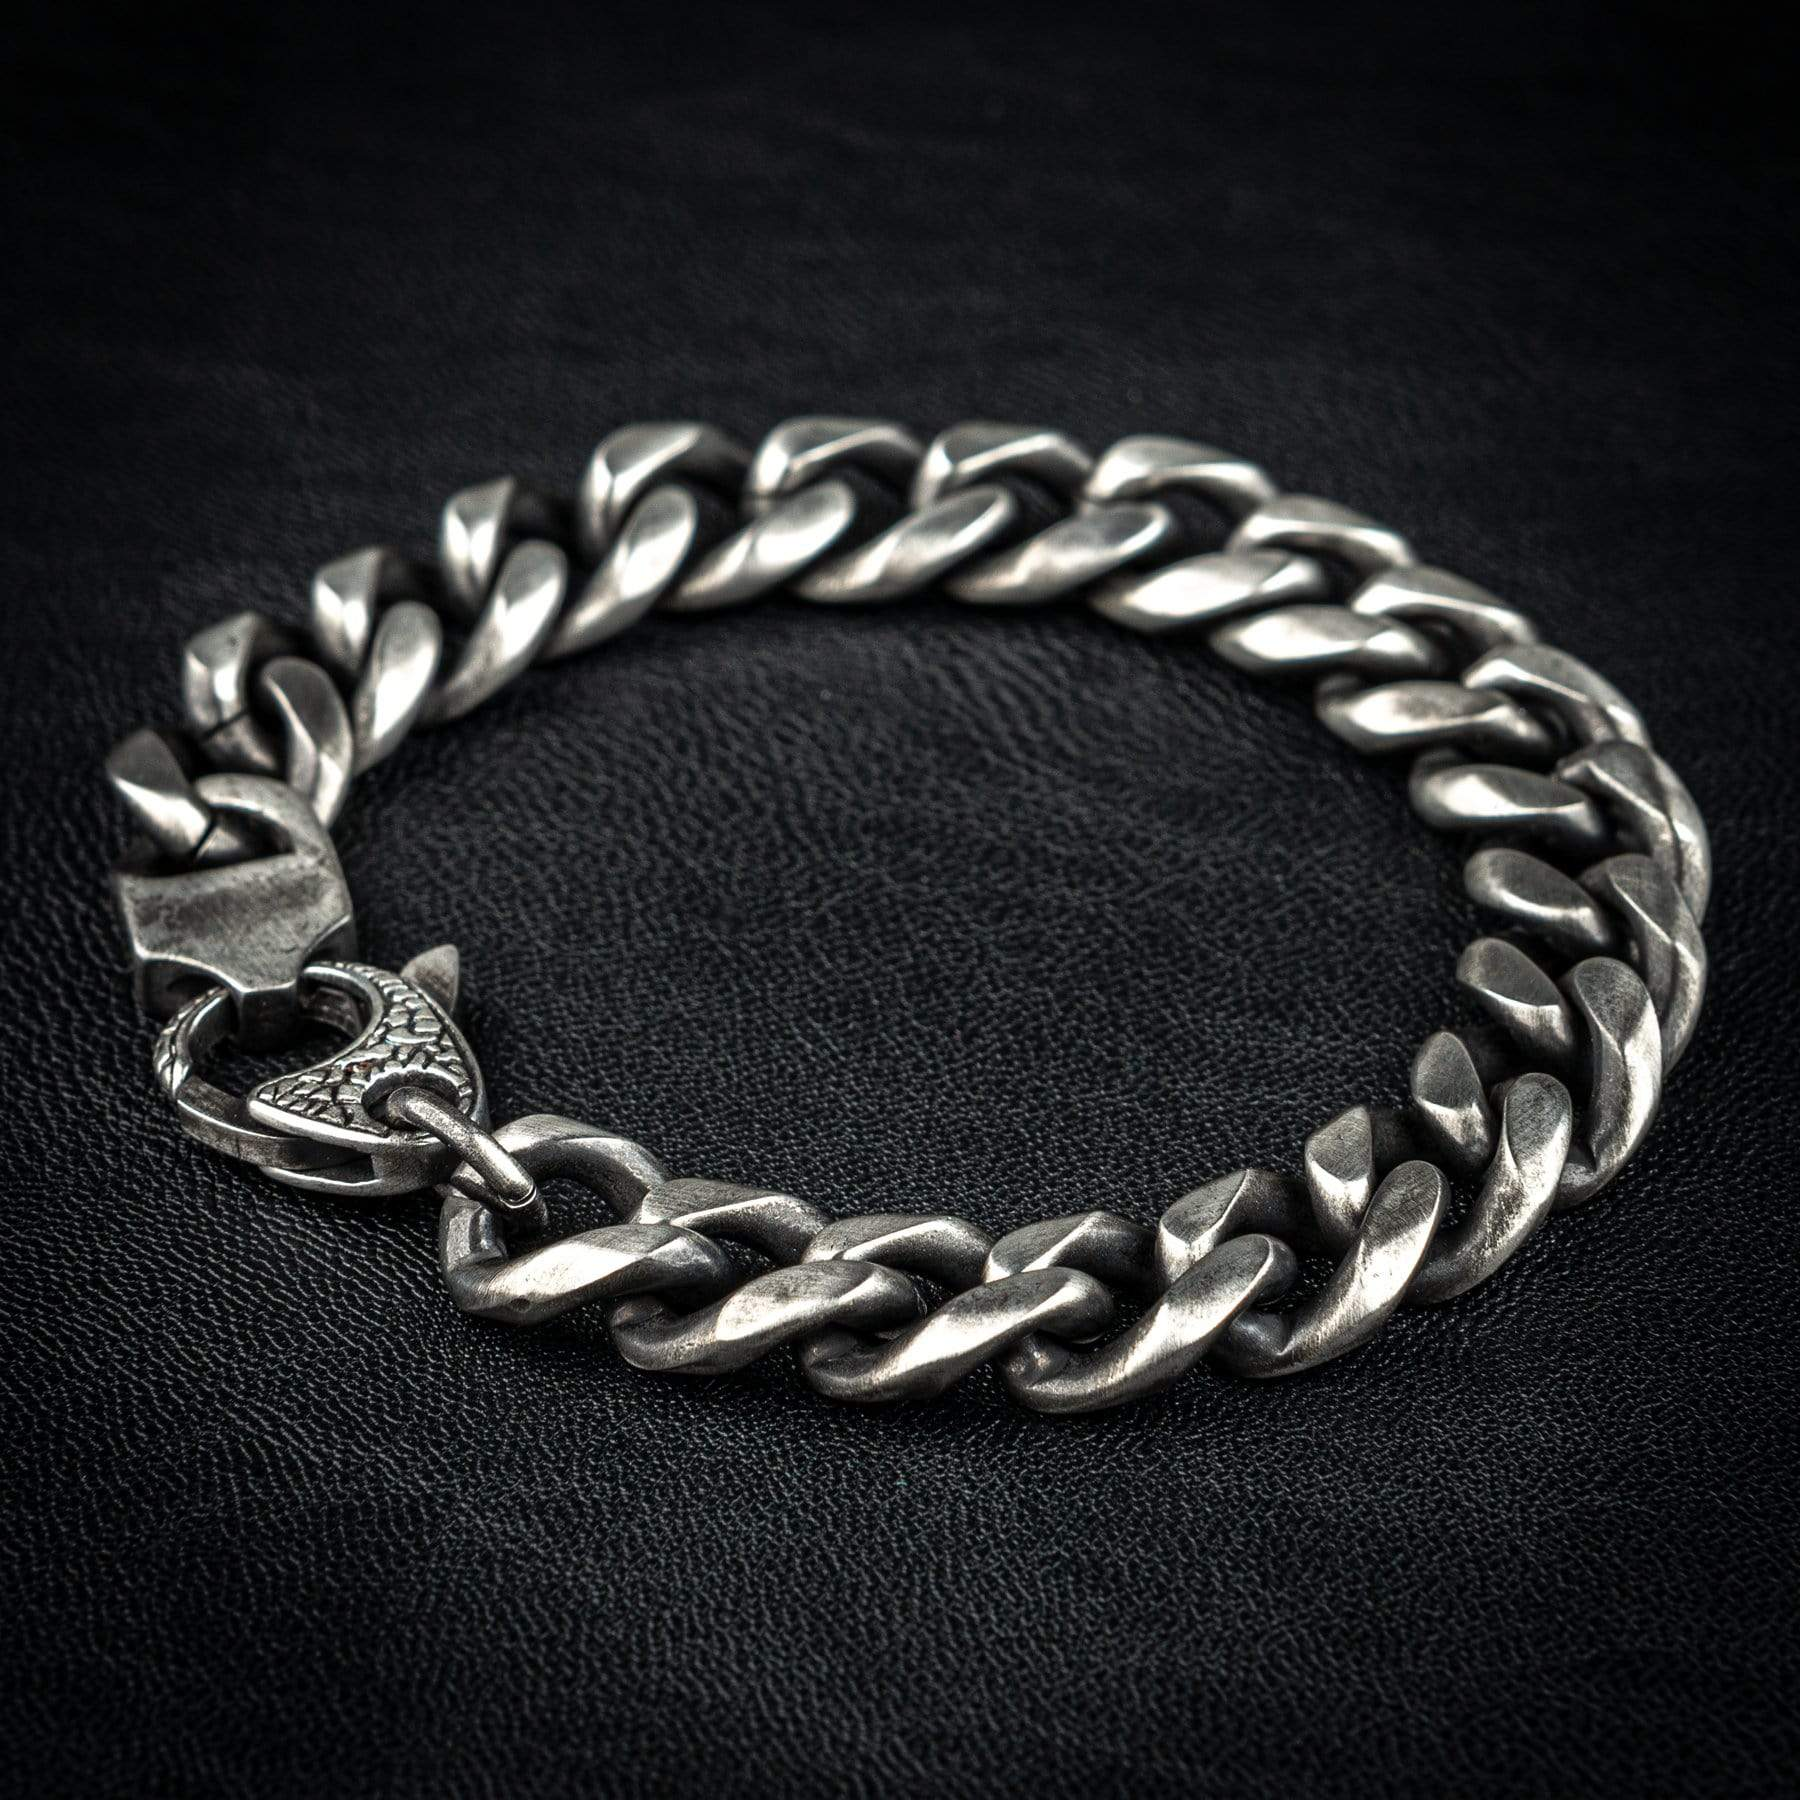 Wornstar Clothing Derelict stainless steel chain bracelet with lobster claw closure.